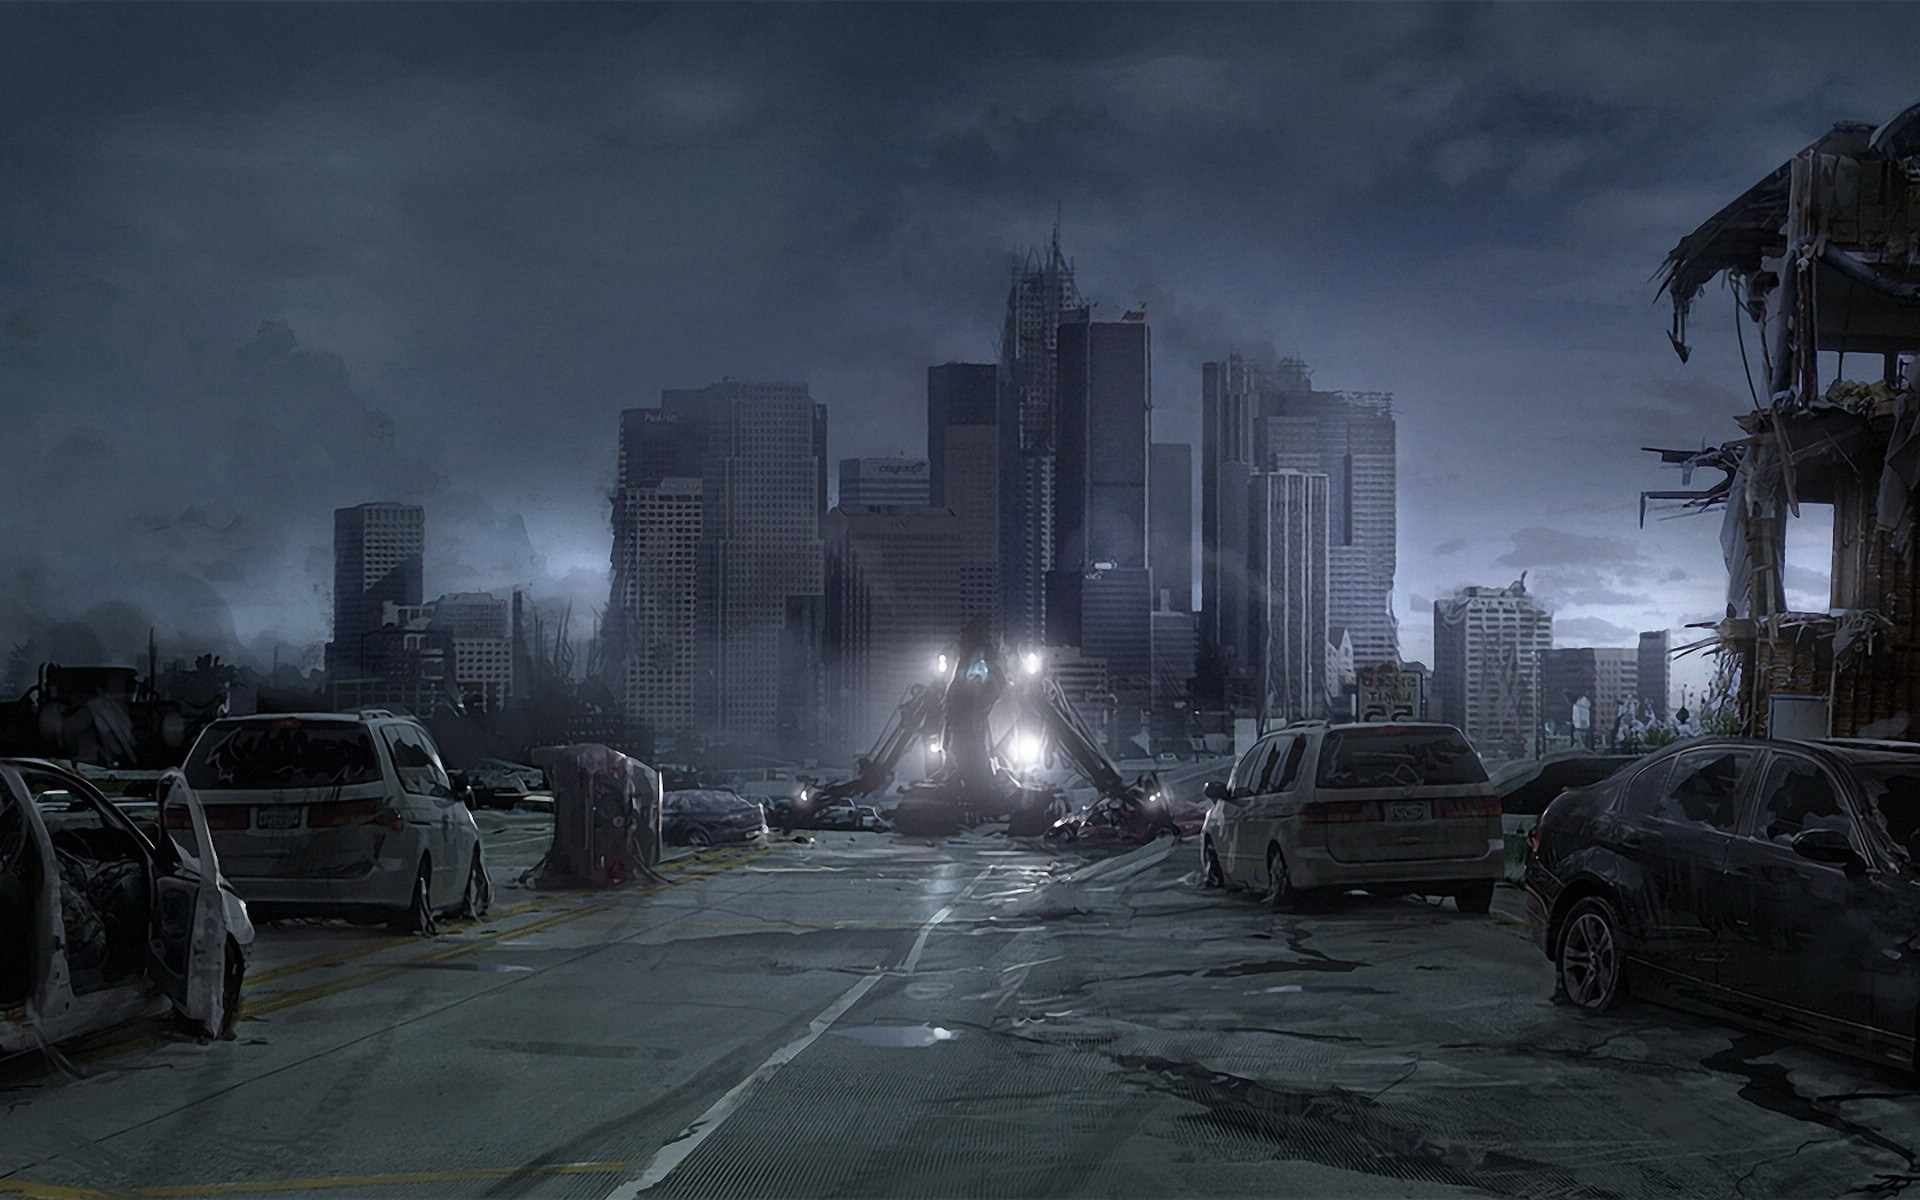 apocalyptic hd wallpaper 2560x1440 - photo #1